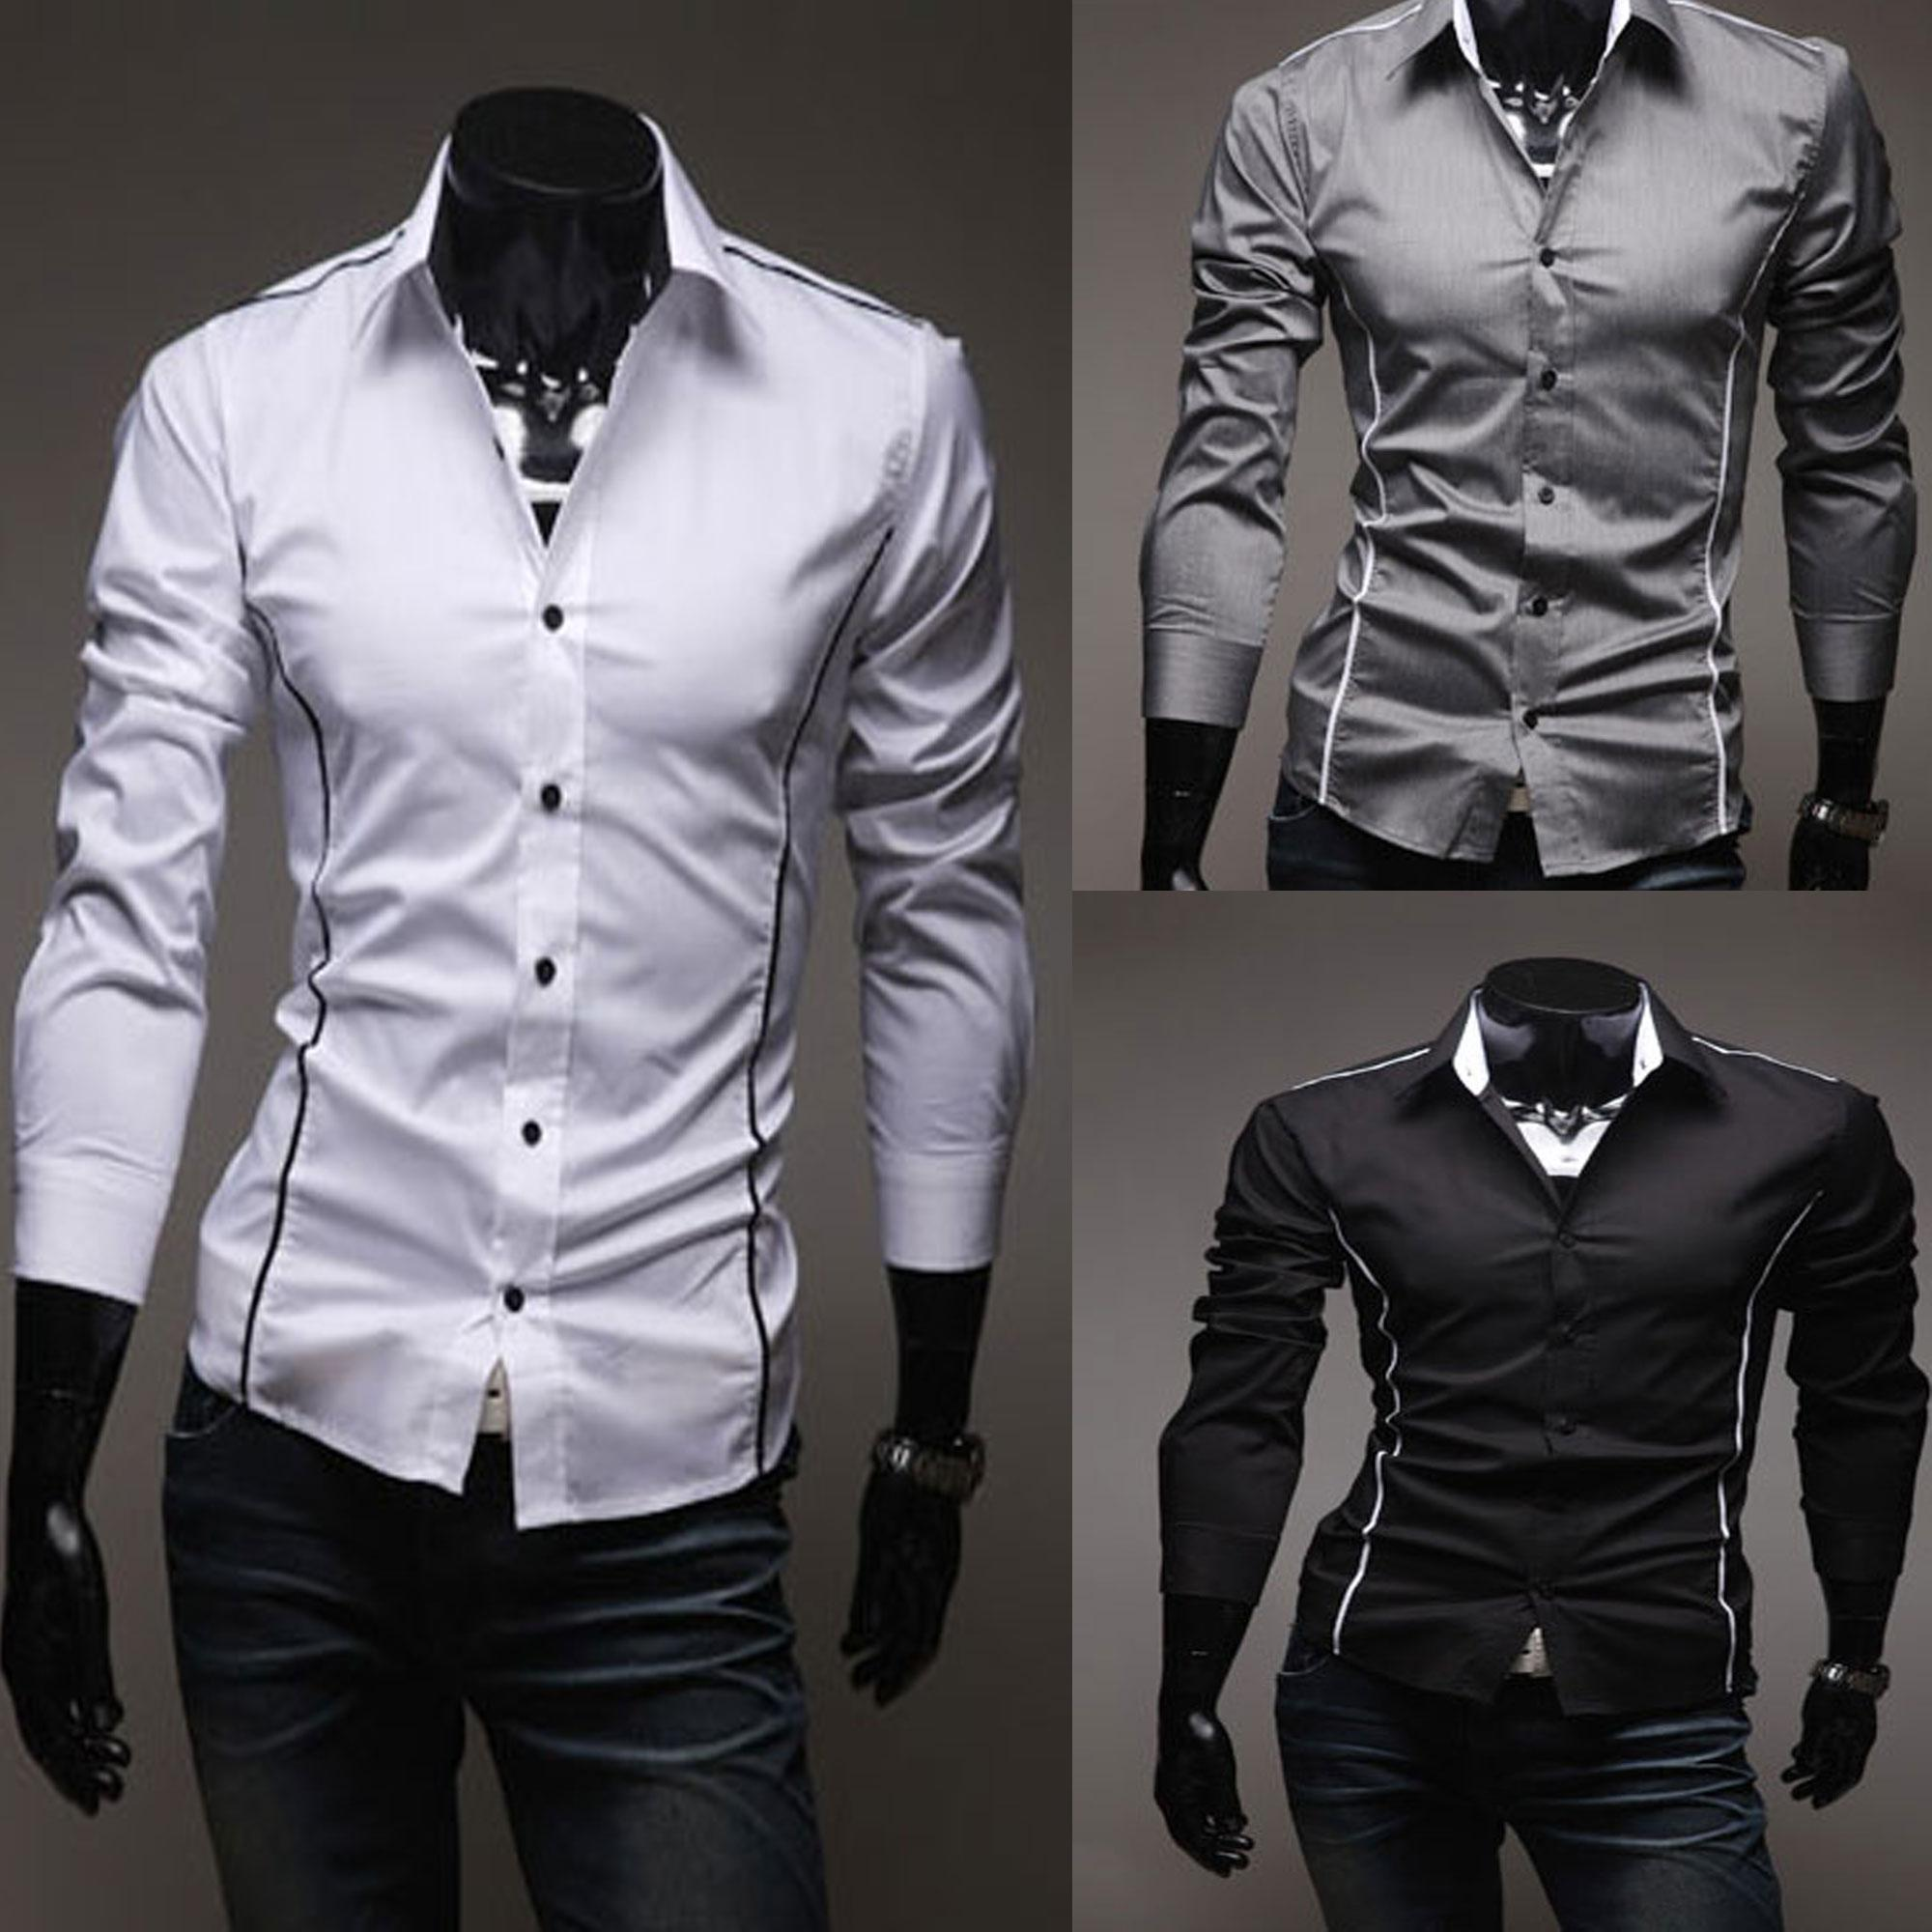 New Mens Fashion Luxury Stylish Casual Designer Dress Shirt Muscle